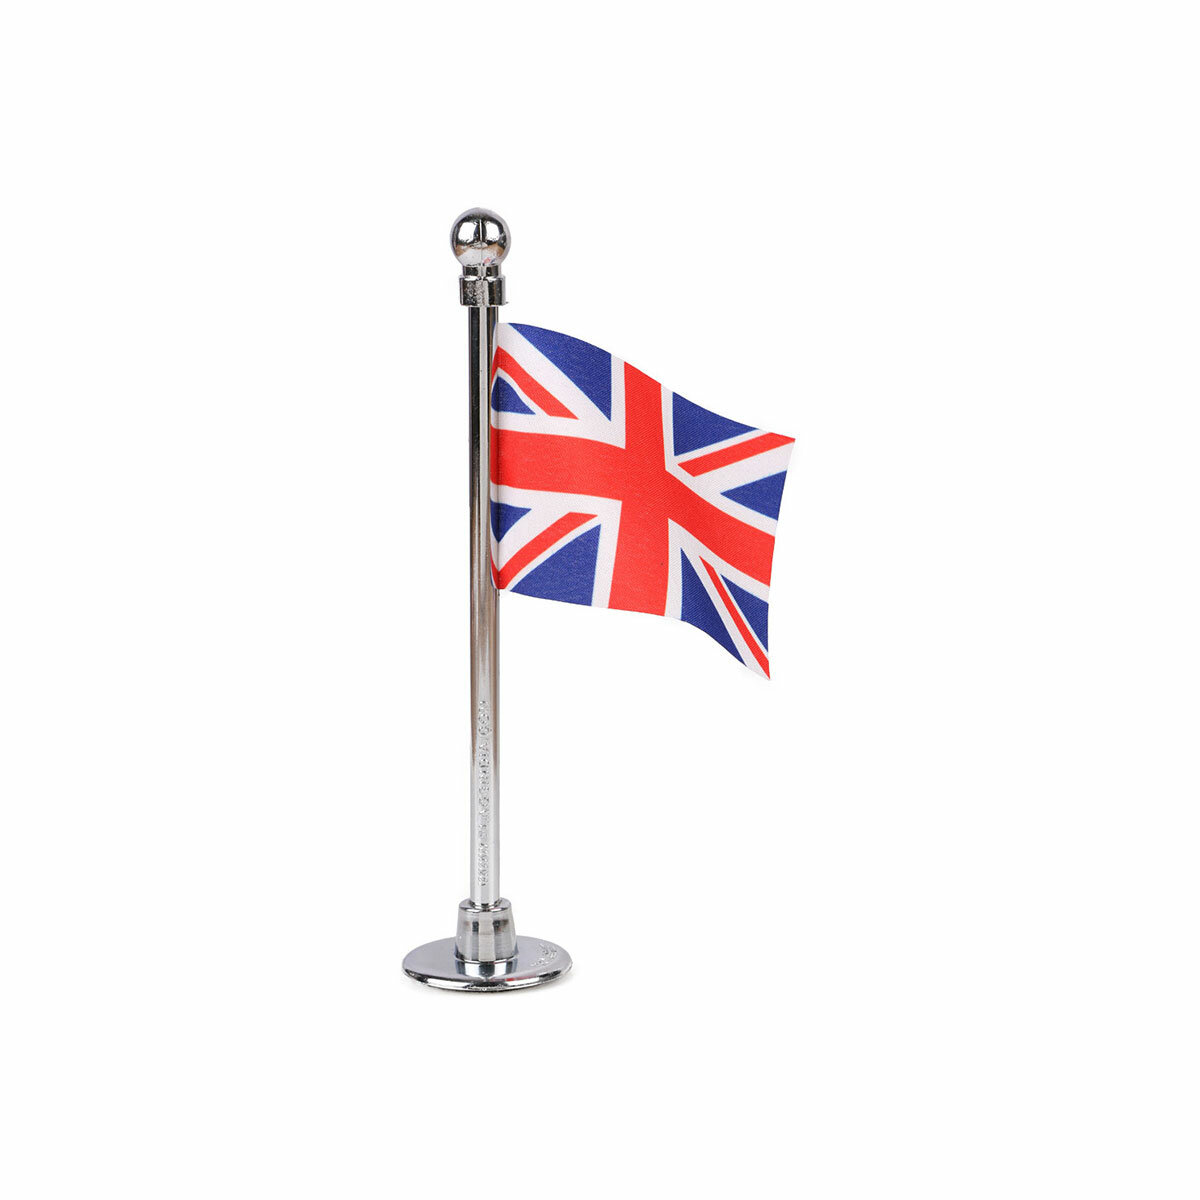 uk car dashboard flag with a chrome plated plastic stand / base